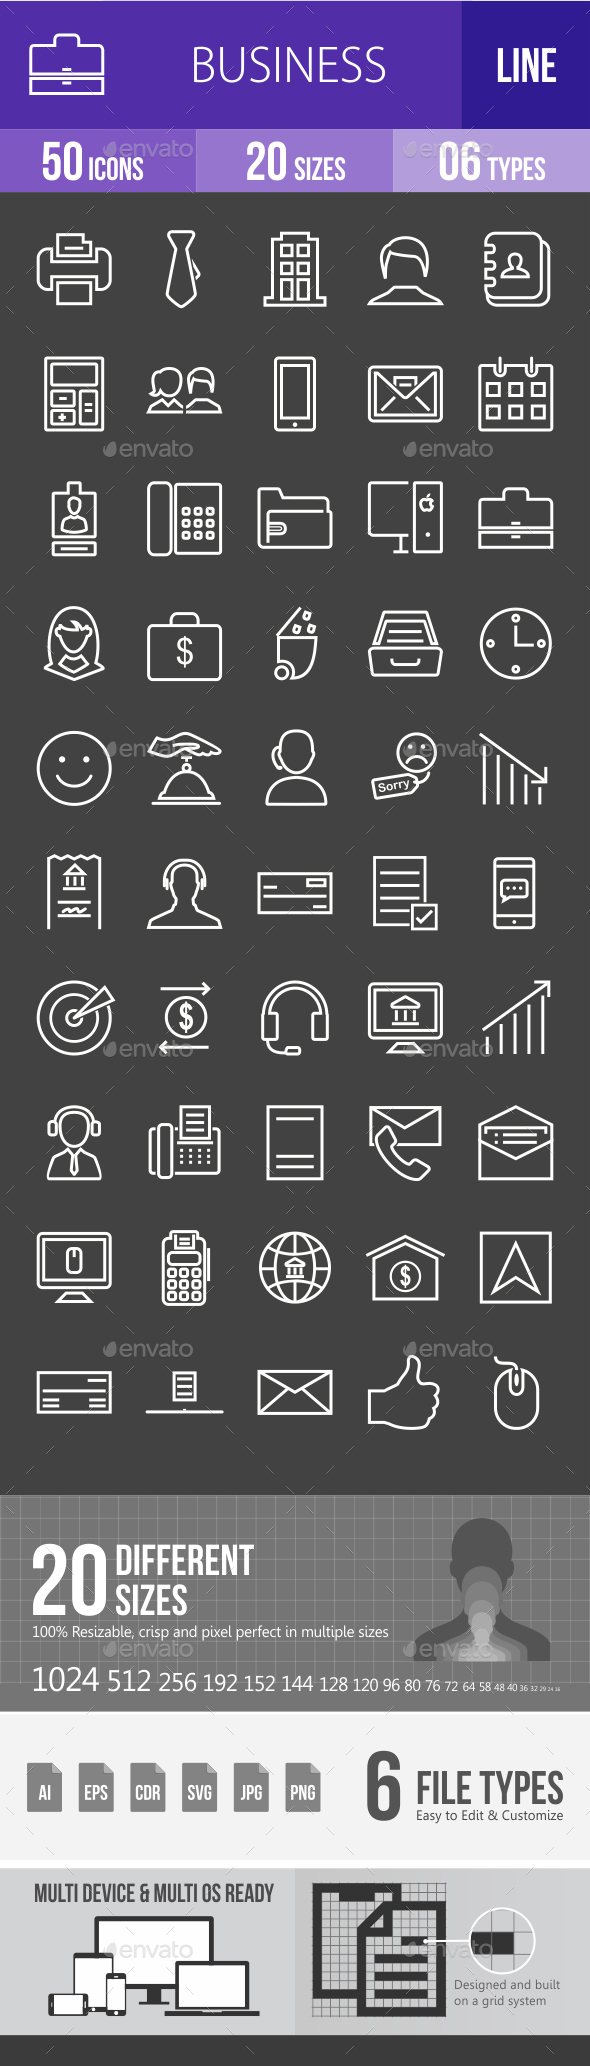 Business Line Inverted Icons - Icons